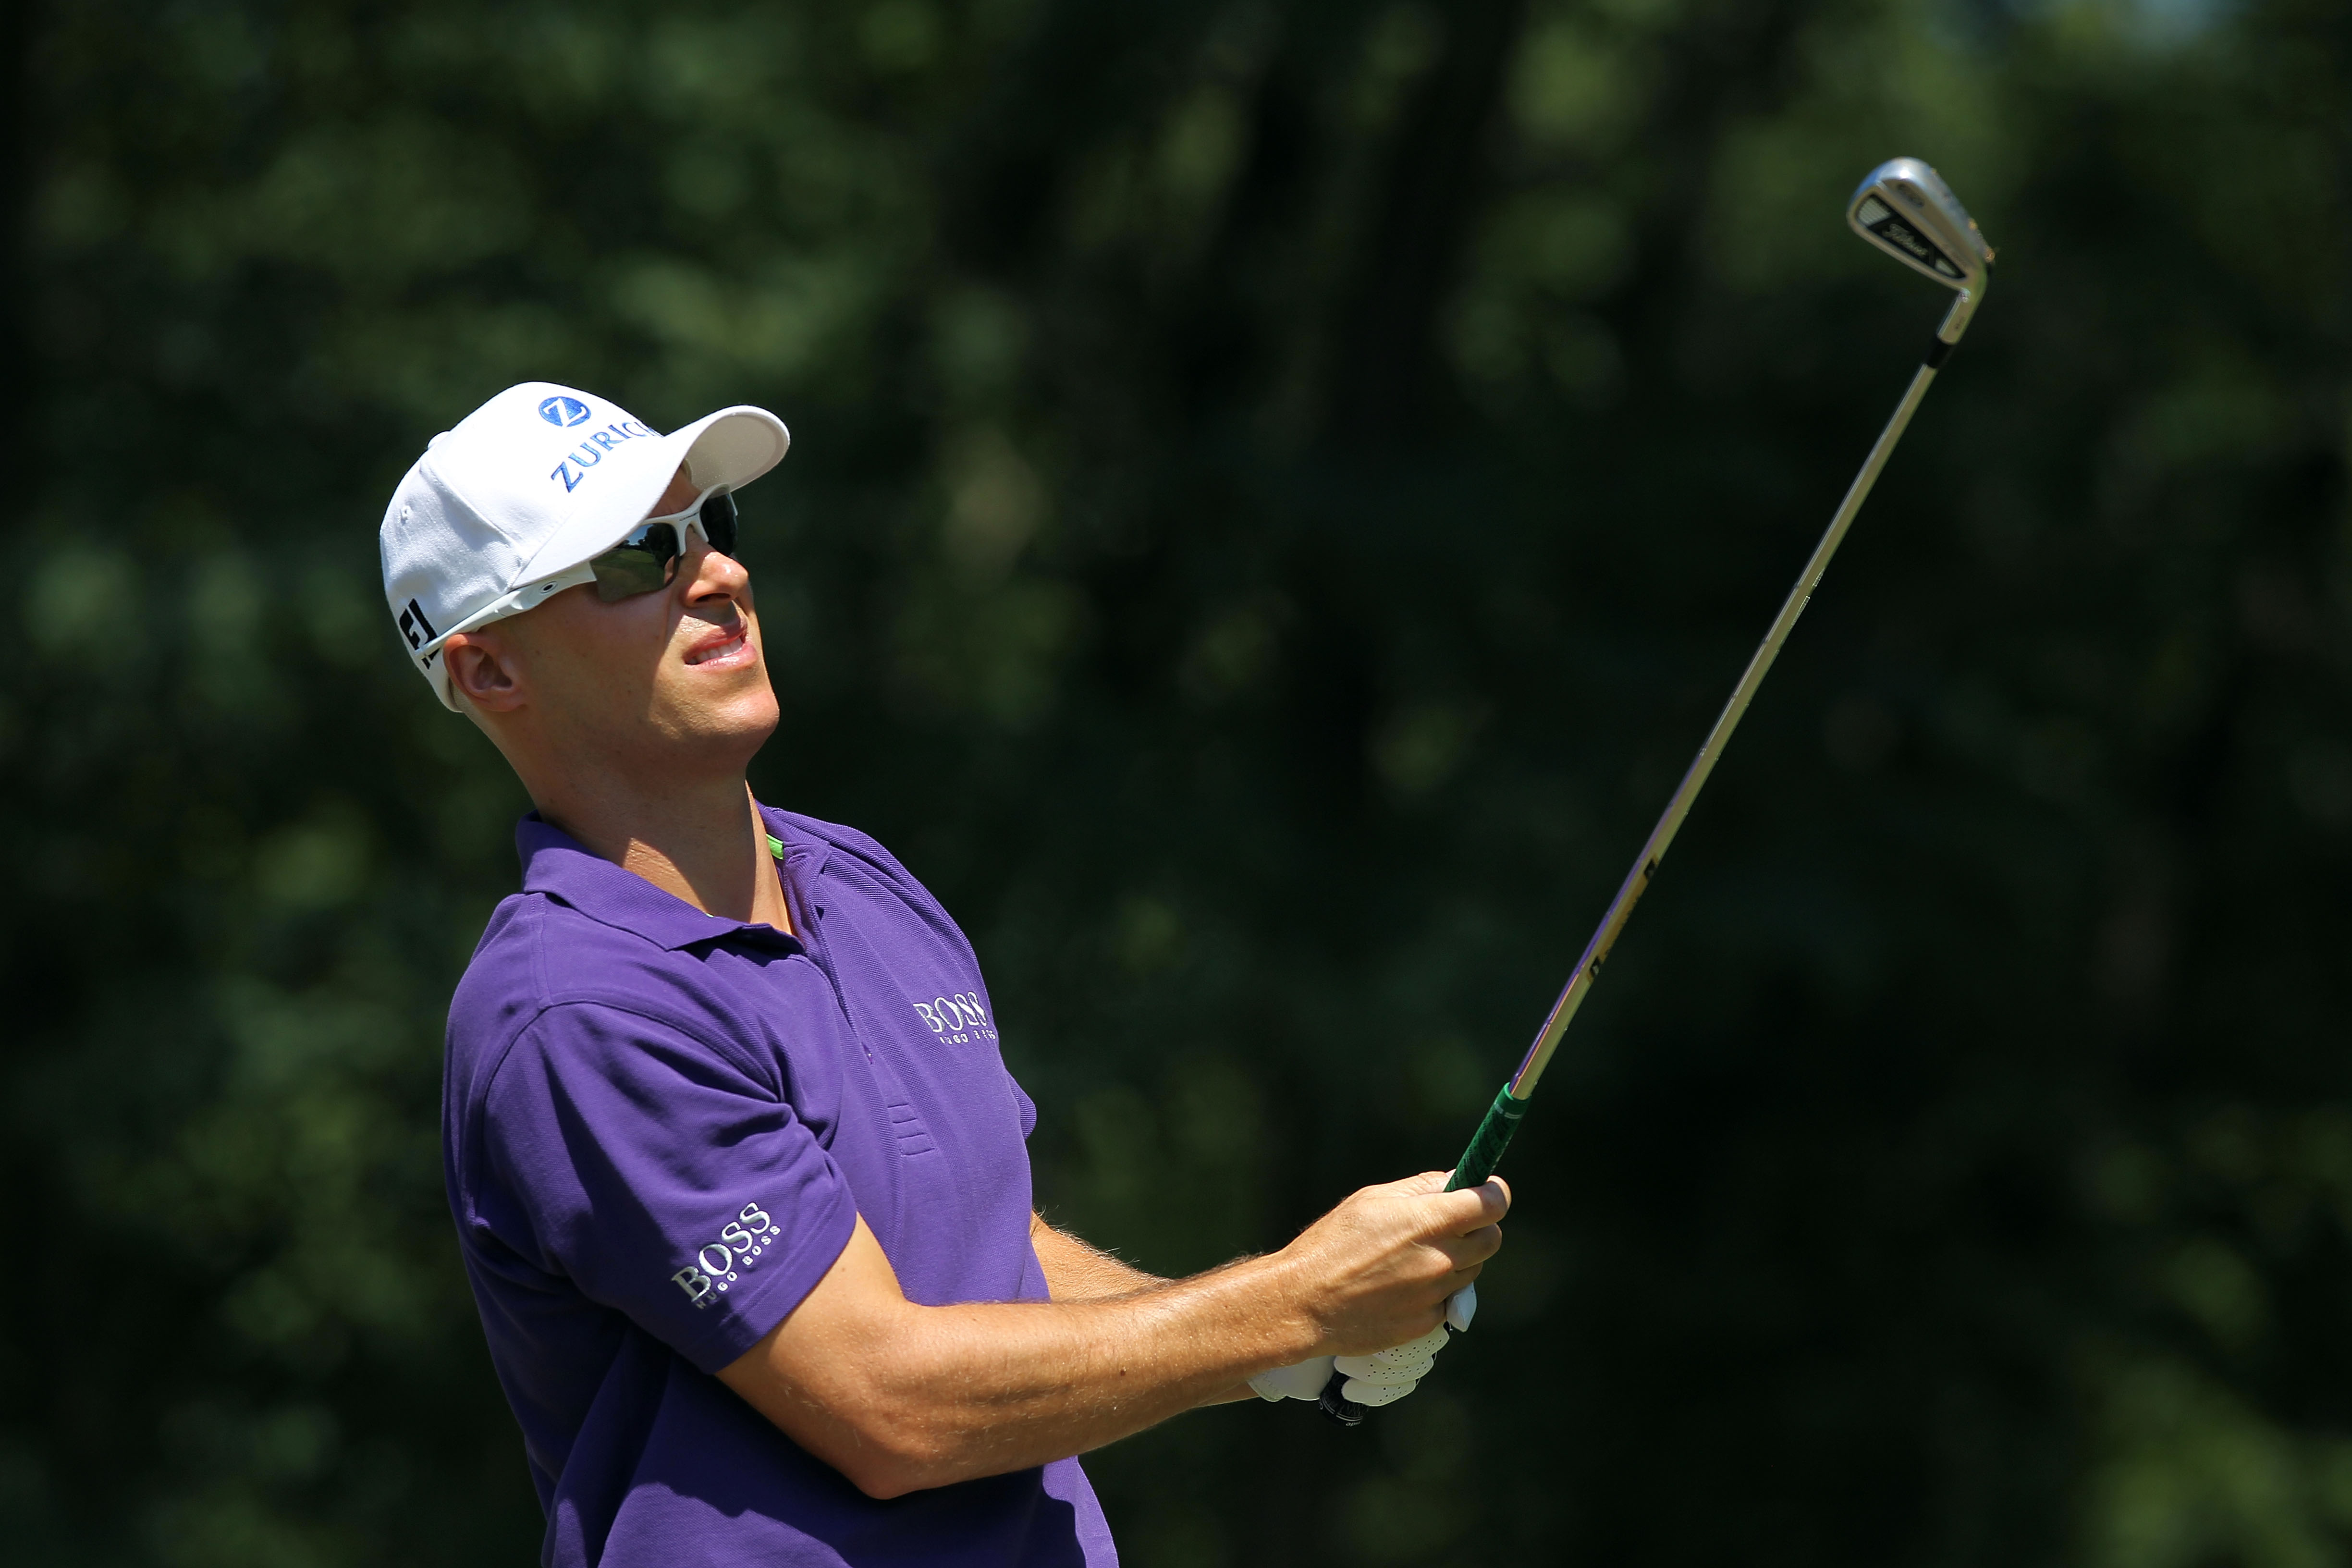 PARAMUS, NJ - AUGUST 28:  Ben Crane watches his tee shot on the second hole during the third round of The Barclays at the Ridgewood Country Club on August 28, 2010 in Paramus, New Jersey.  (Photo by Hunter Martin/Getty Images)